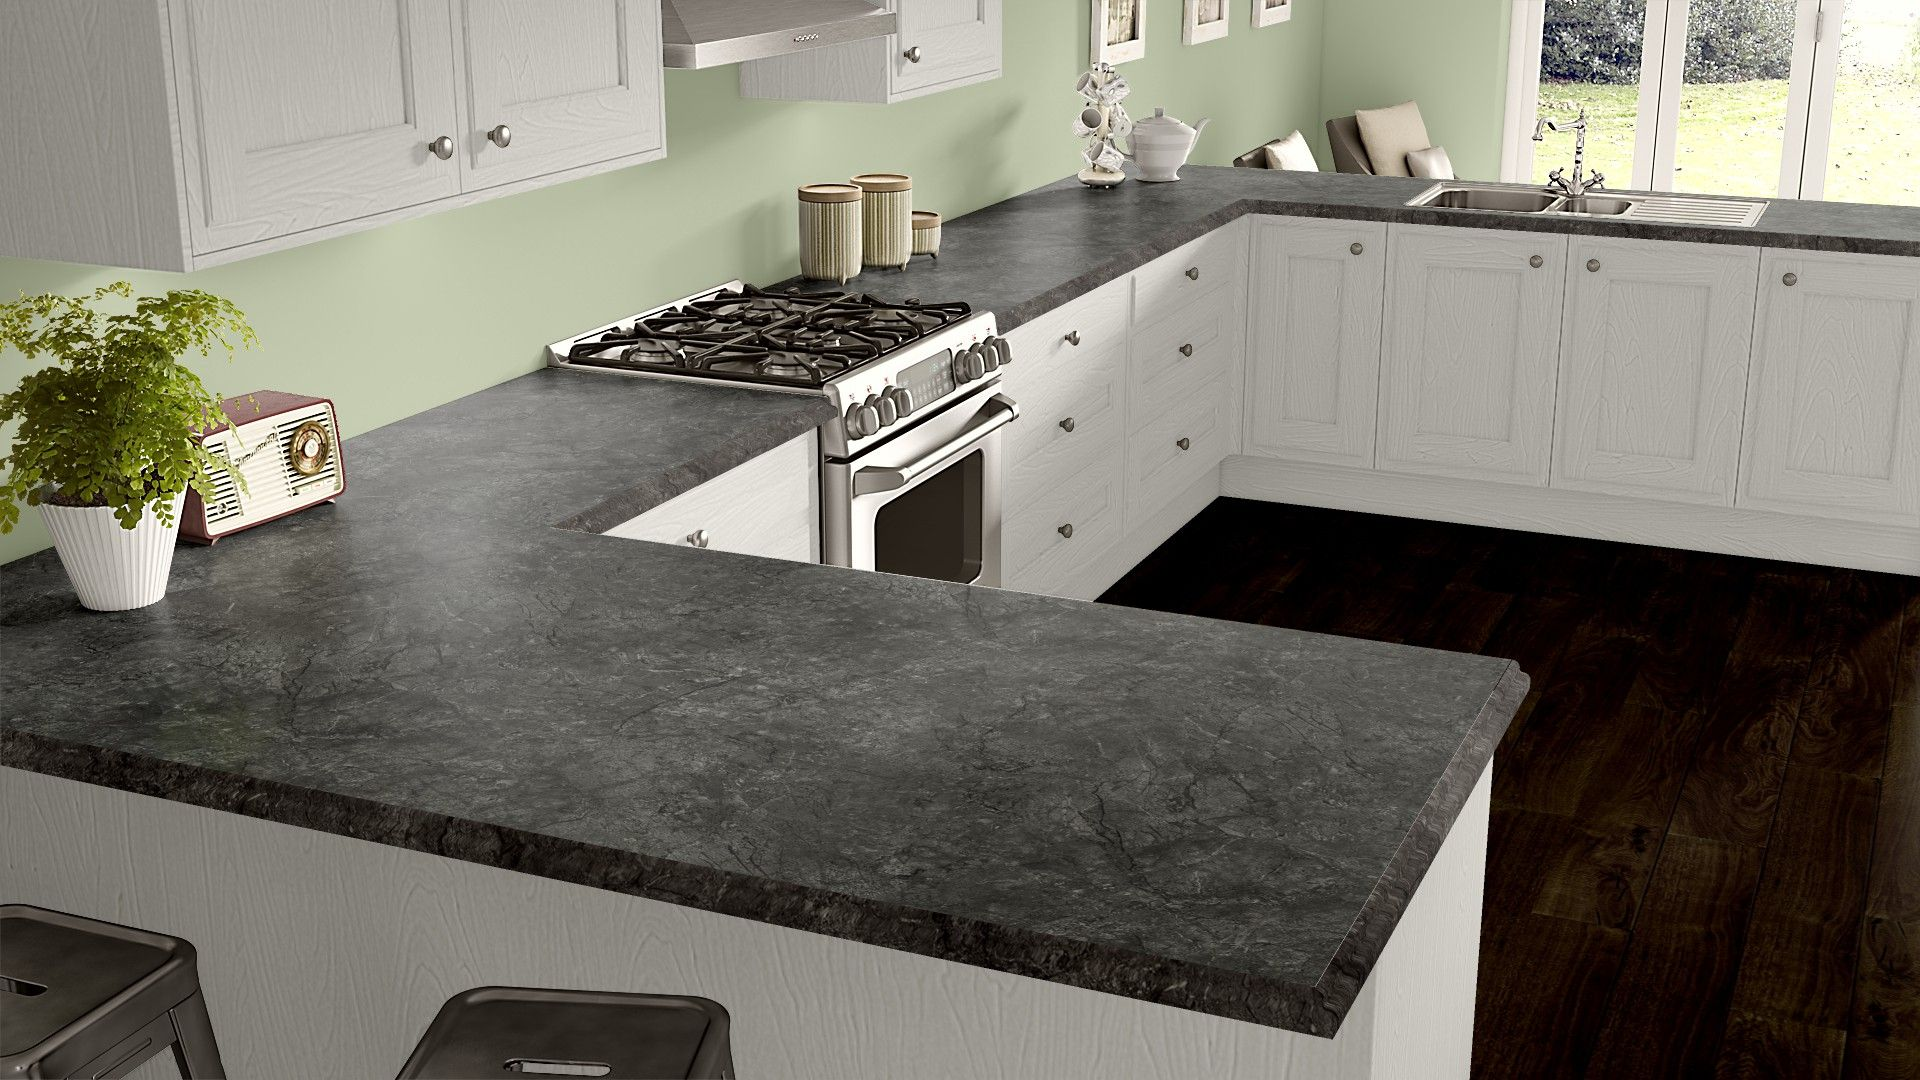 Cabinet White Counter Andorra Shadow Antique Kitchen Renovation Kitchen Remodel Small Kitchen Inspirations